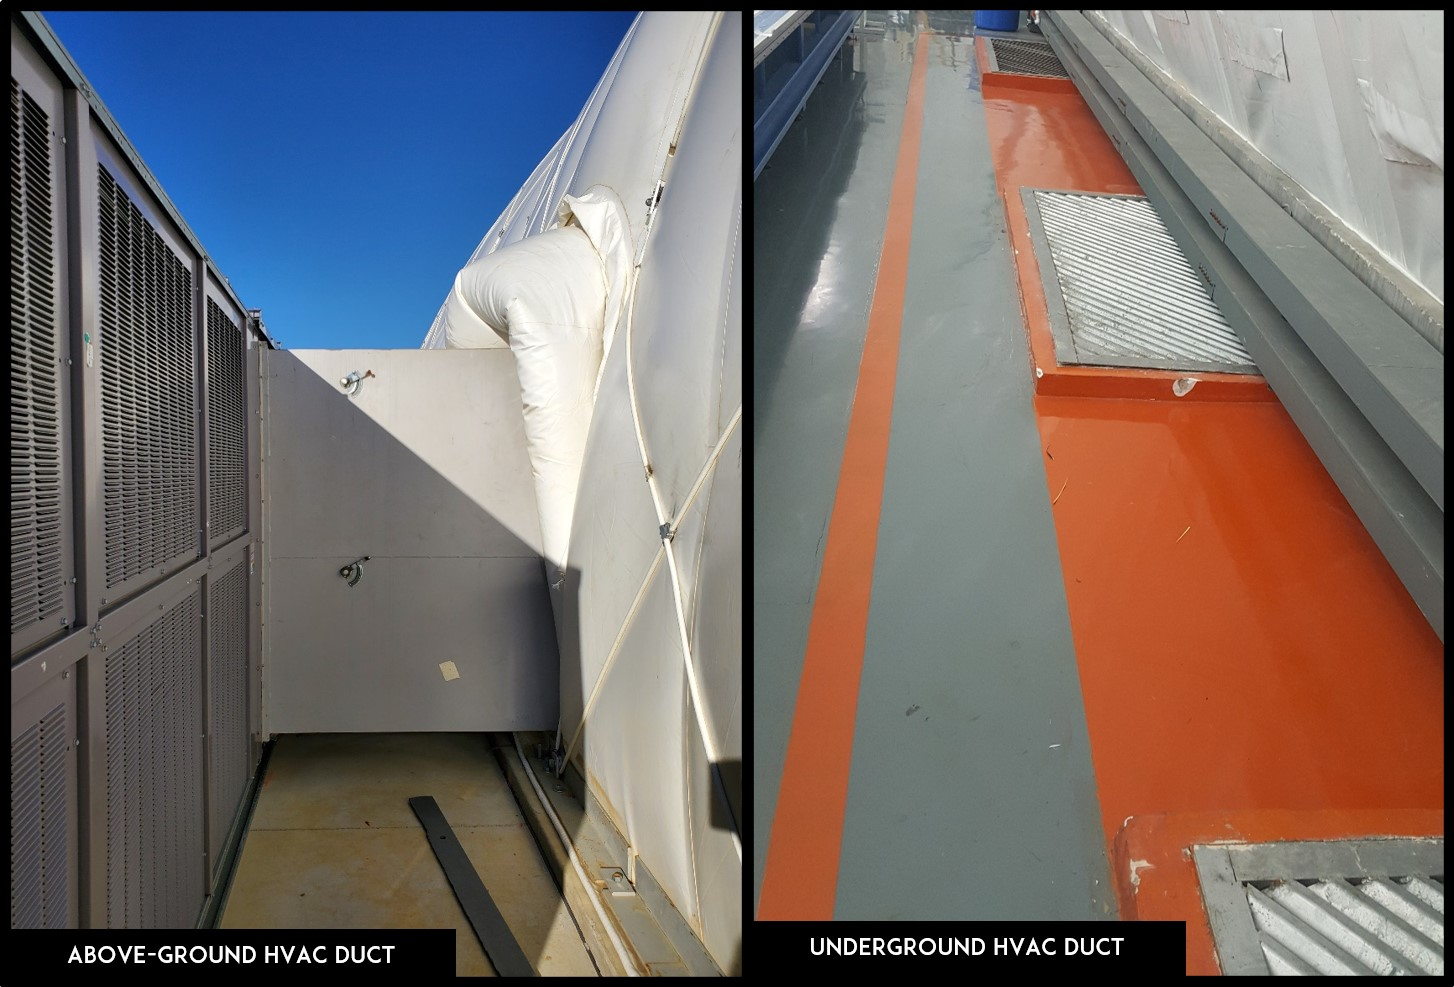 hvac duct - above and under